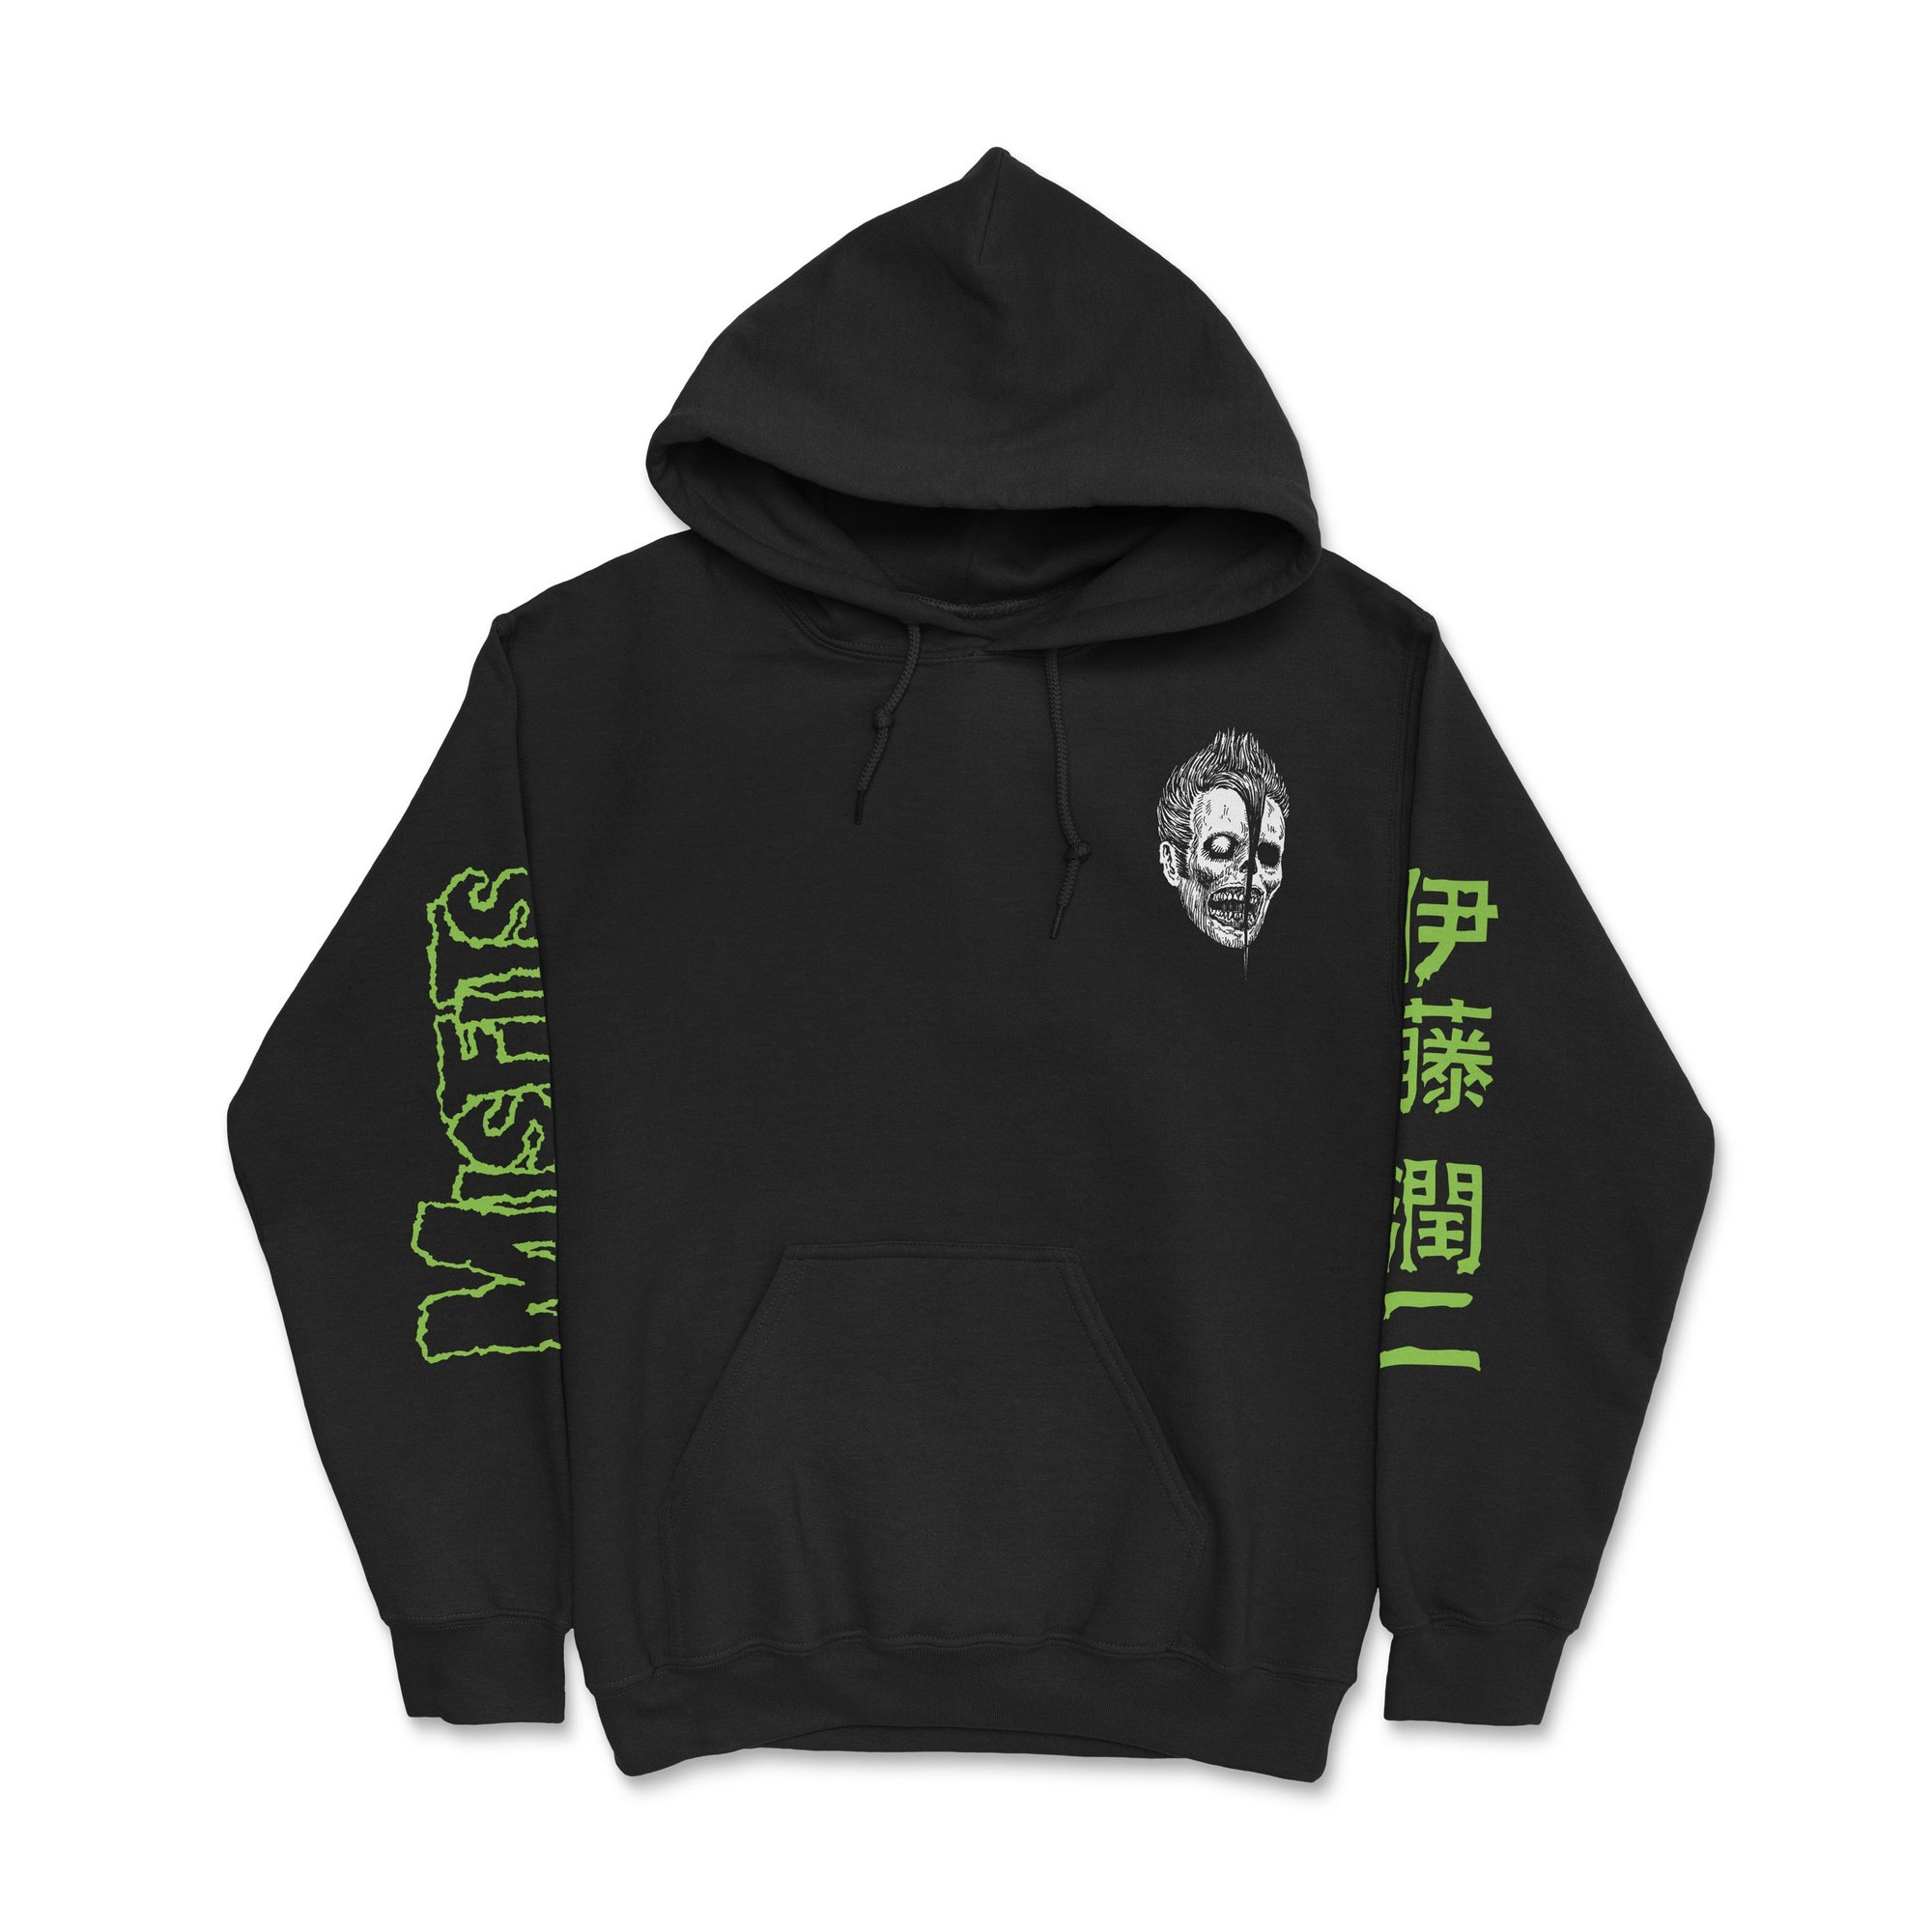 CR Loves Misfits x Junji Ito Collection Hoodie Front